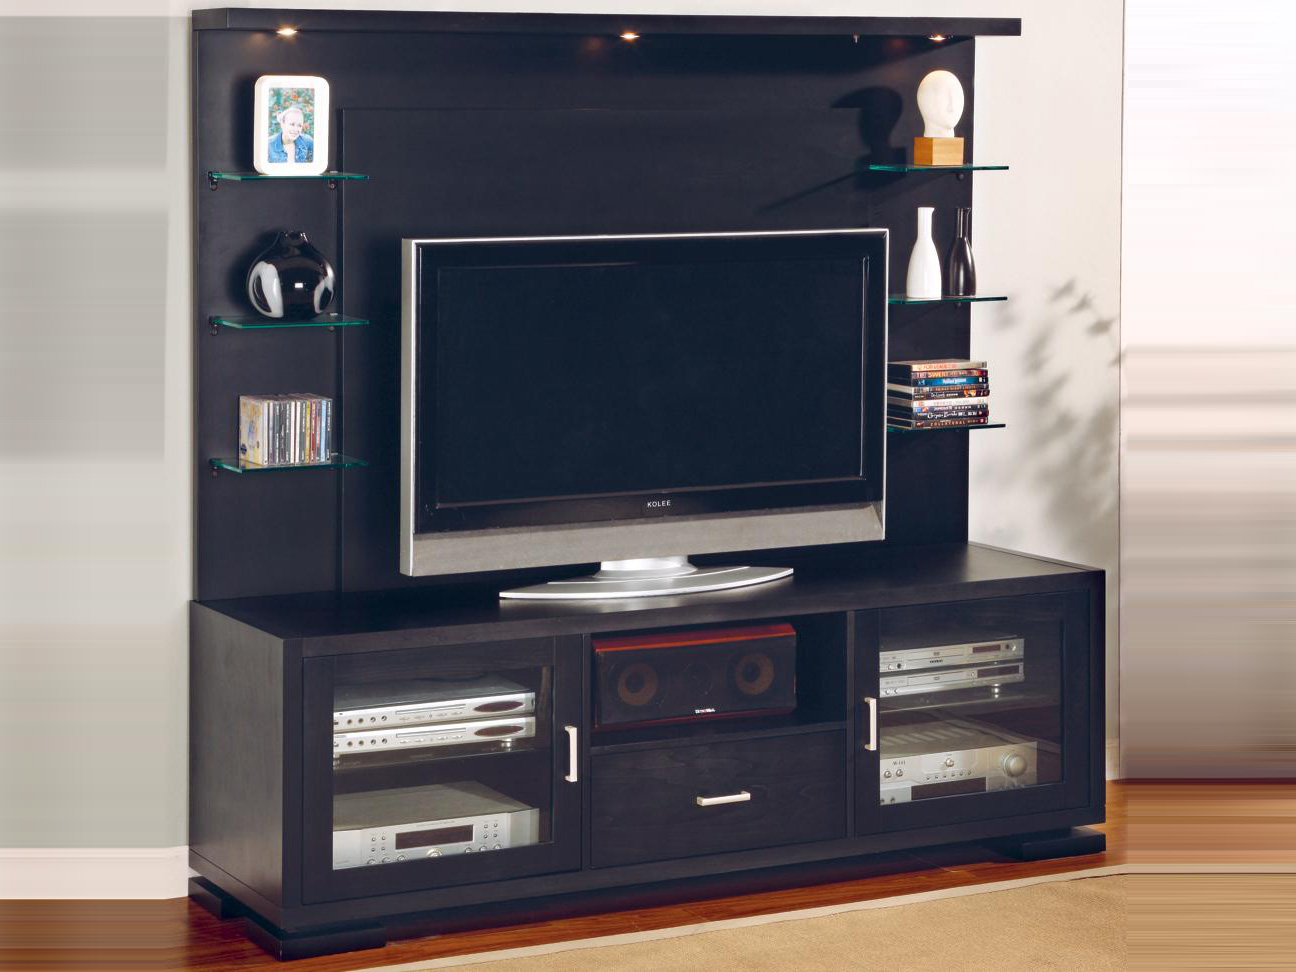 Teak Furniture Entertainment Center Trend Home Design